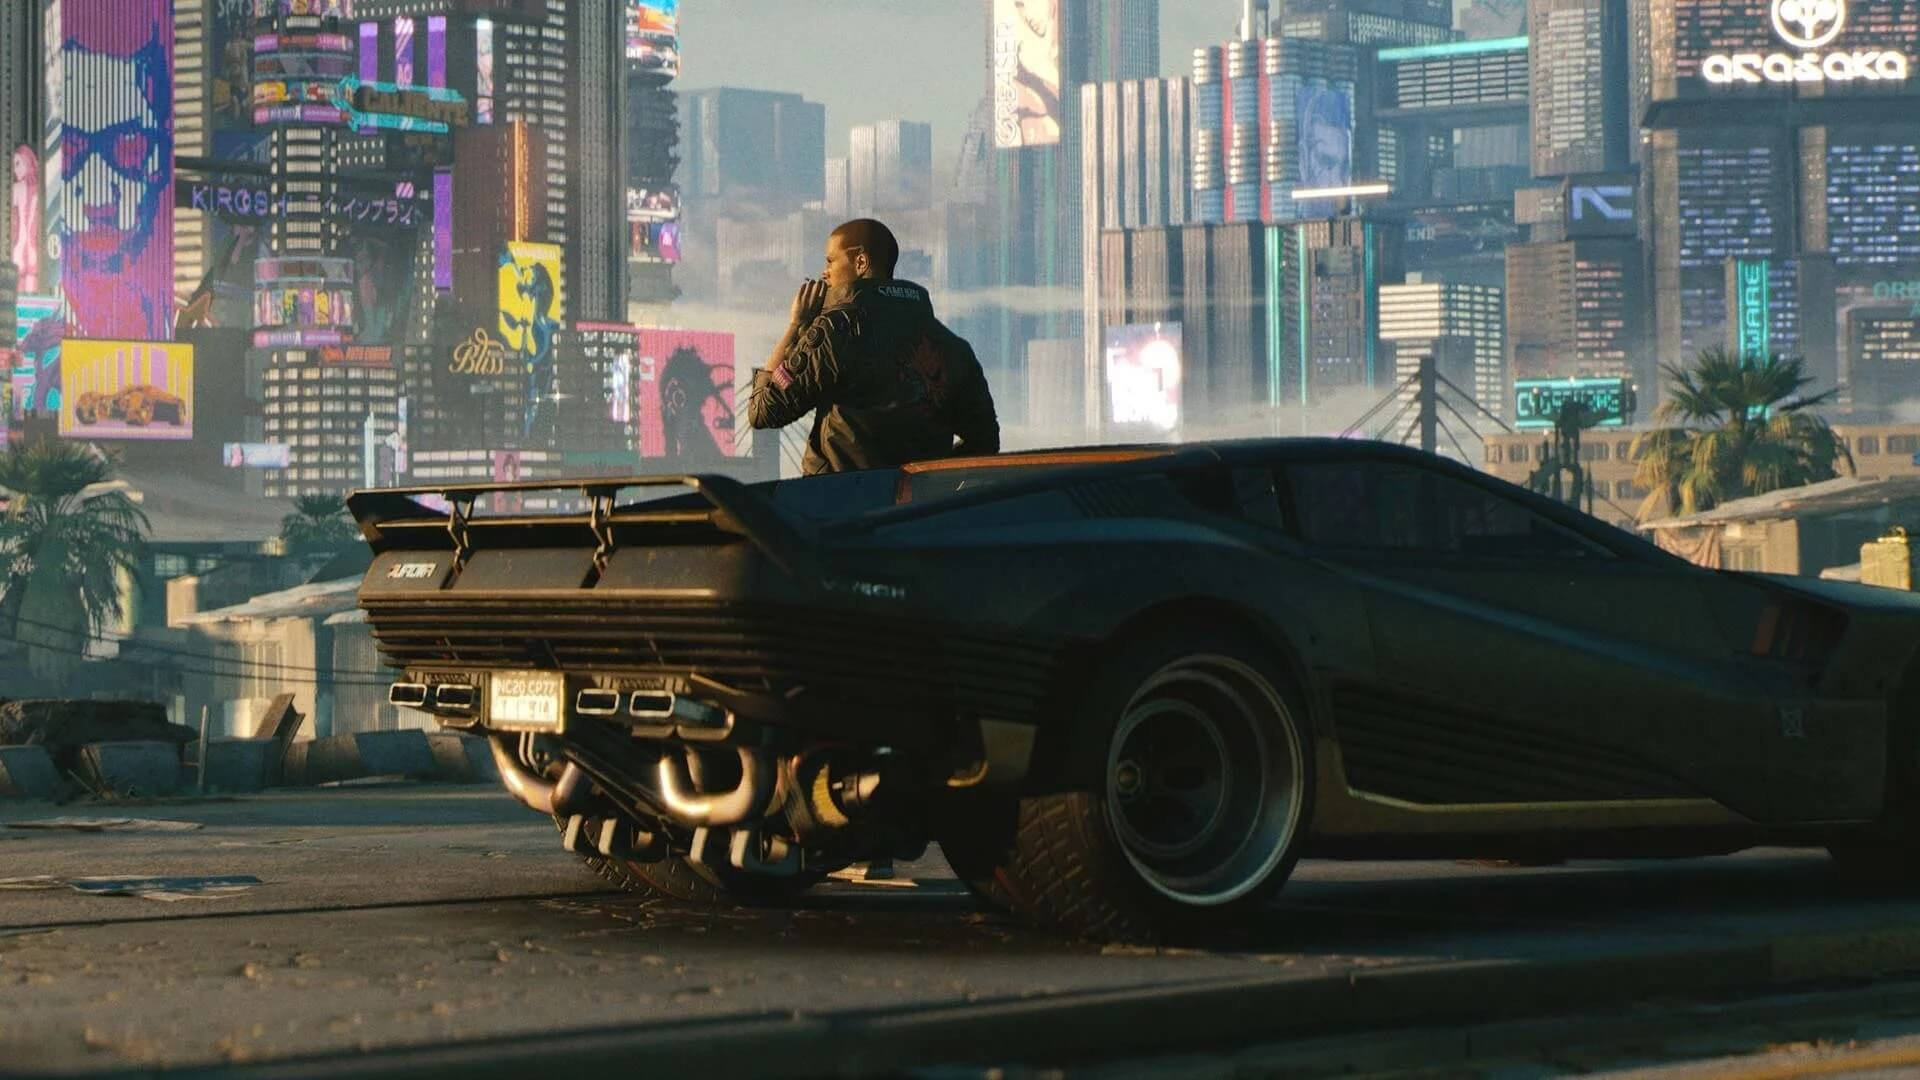 Cyberpunk 2077 receives R18+ rating in Australia, avoiding potential ban